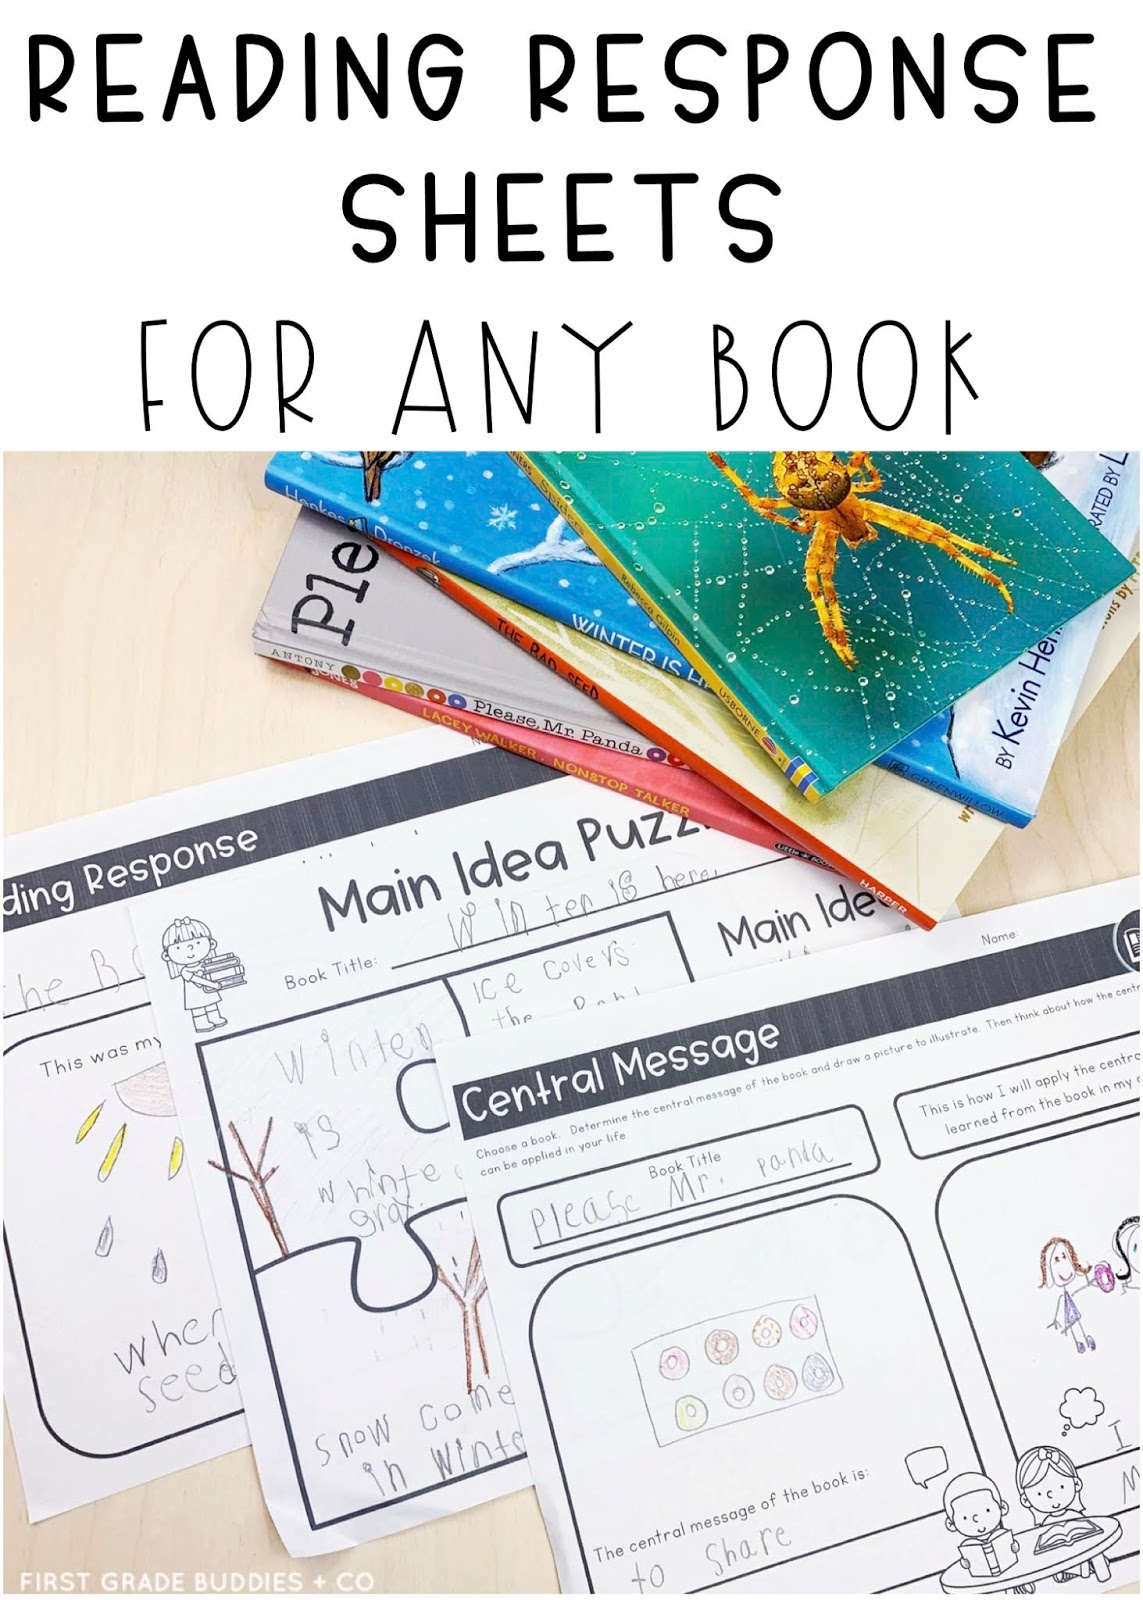 medium resolution of Reading Comprehension Response Sheets for ANY BOOK!   First Grade Buddies